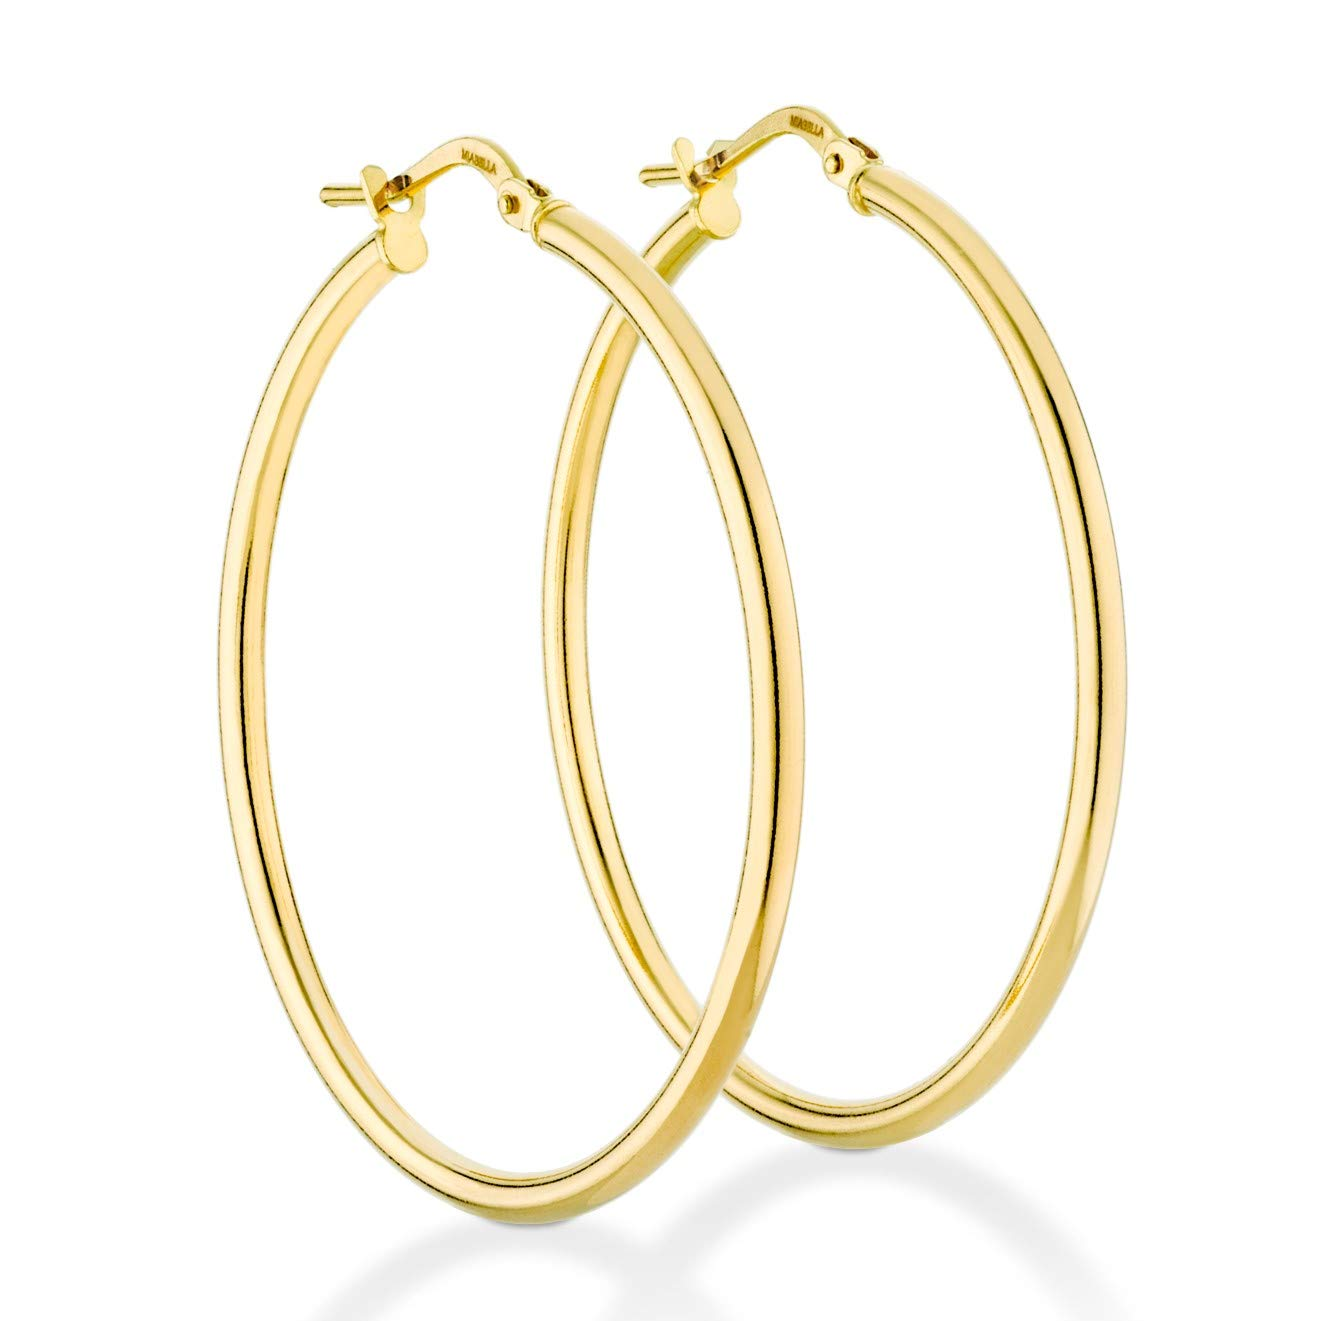 Miabella 18K Gold Over Sterling Silver Italian 2mm High Polished Round Hoop Earrings 15, 20, 30, 40mm 40mm (15) Dversa Inc SYB007510